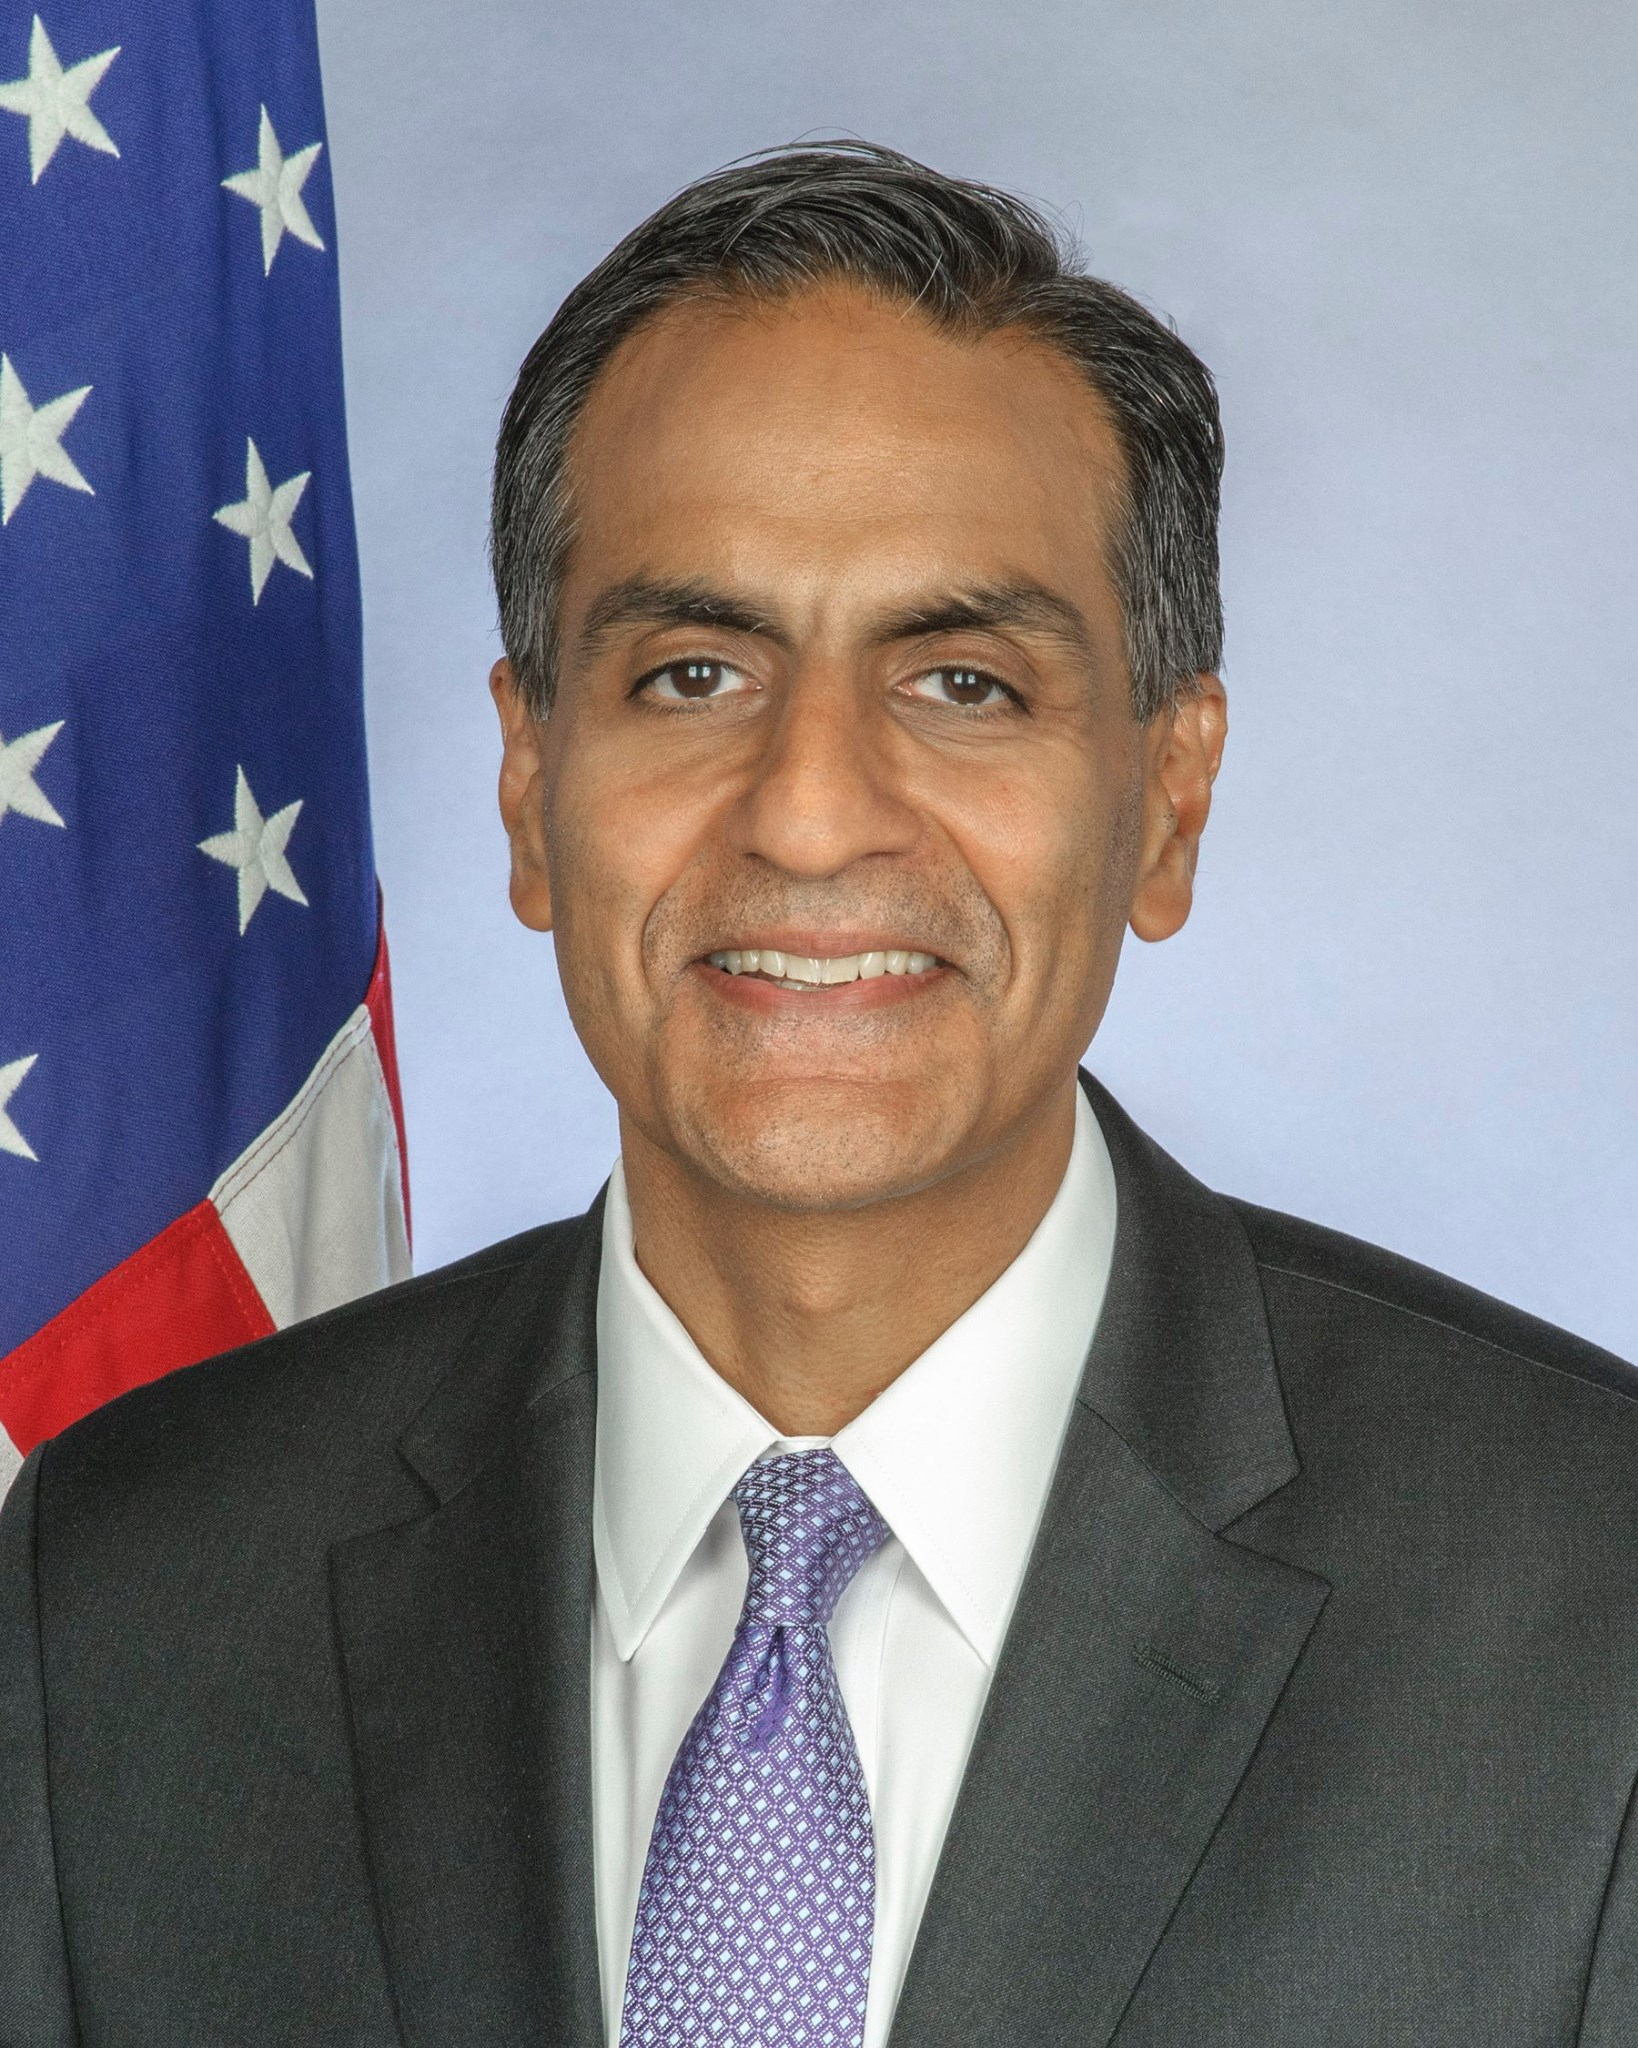 US wants leadership role for India in Asia-Pacific